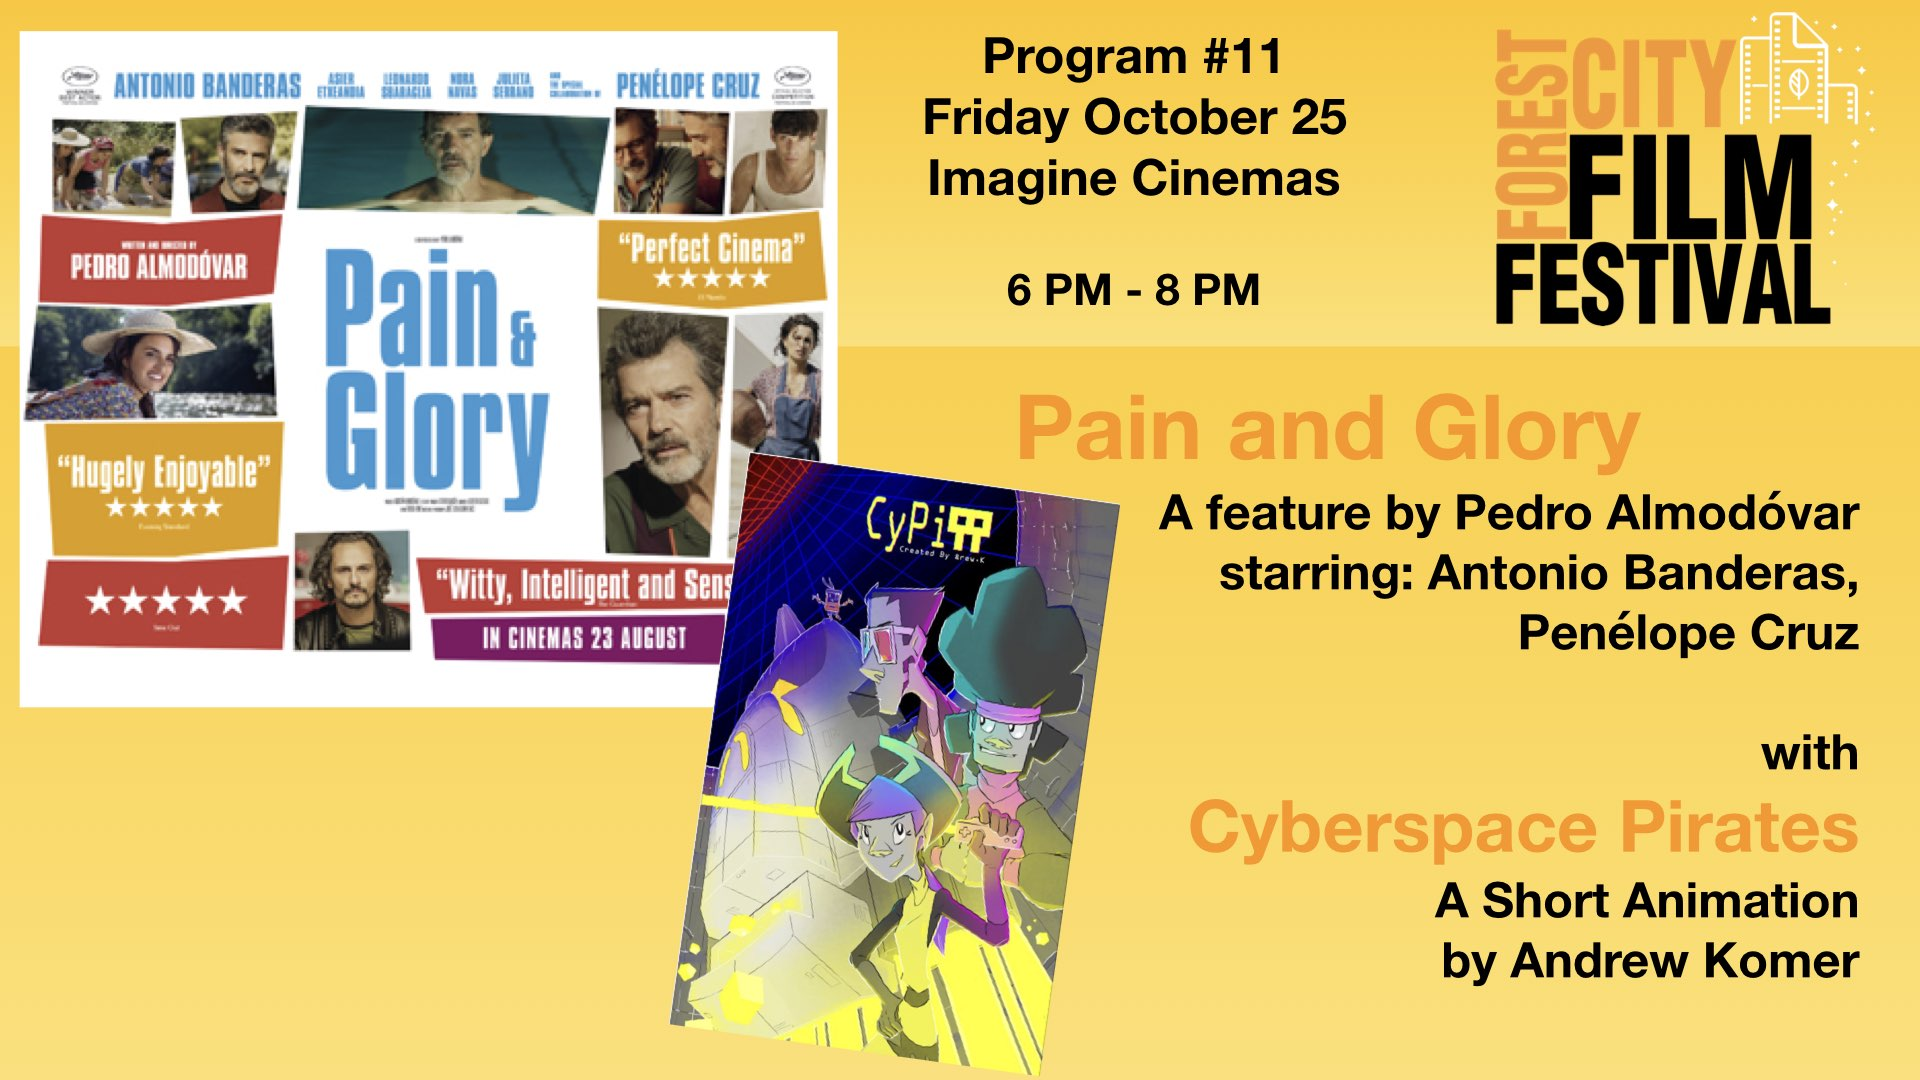 FCFF 2019 - Friday Early Evening at Imagine Program #11 - Pain & Glory (feature)